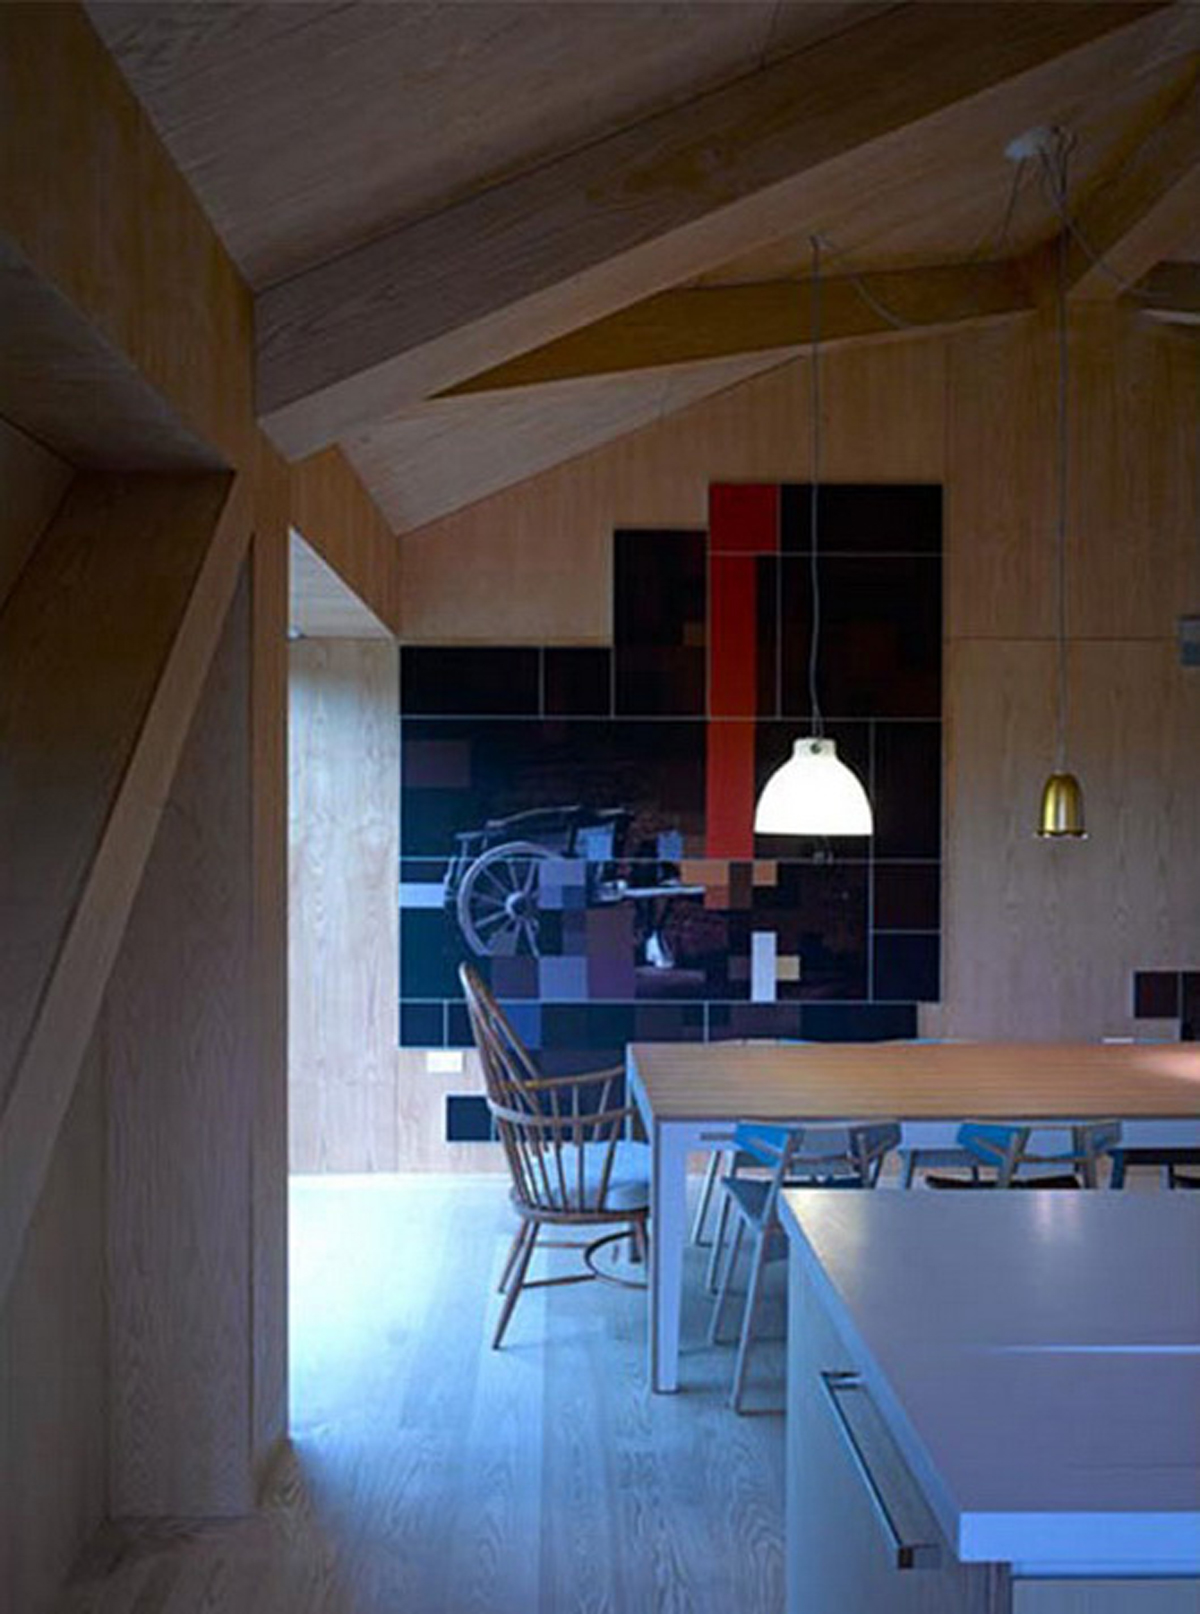 MVRDV Work in Unique Balanced Barn House - Kitchen and Dining Room